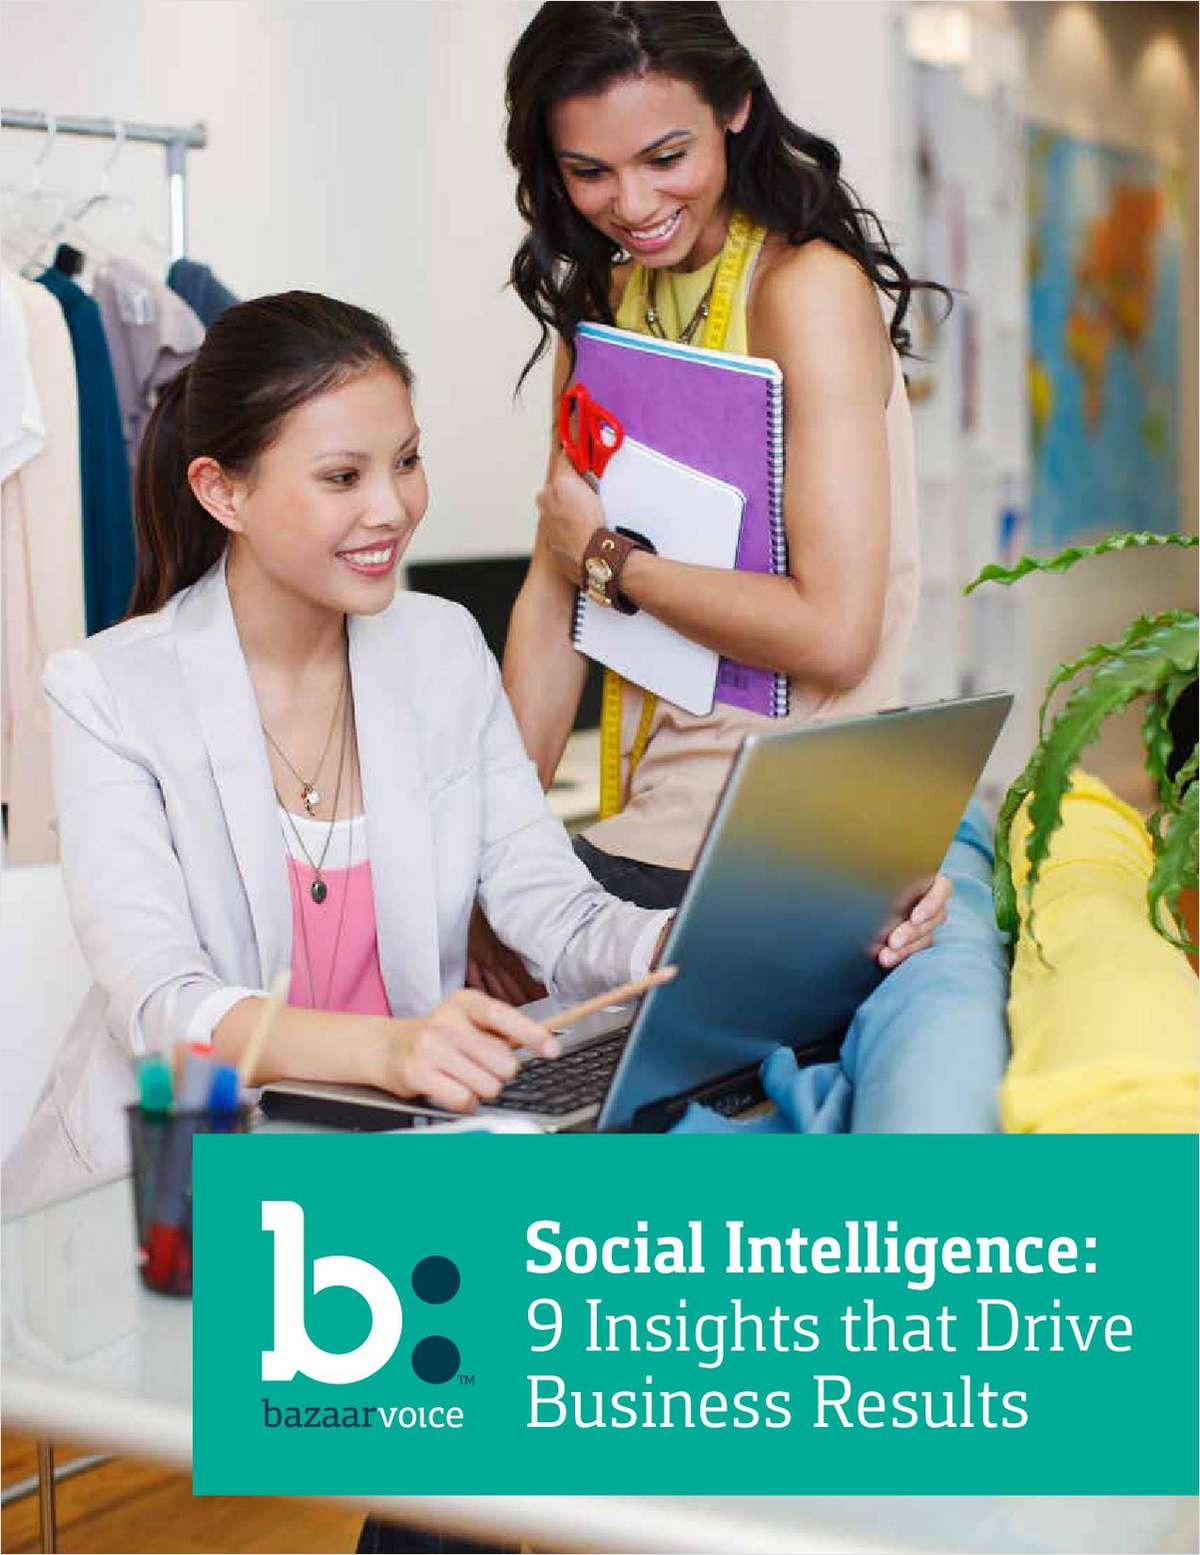 9 Social Insights that Drive Real Business Results